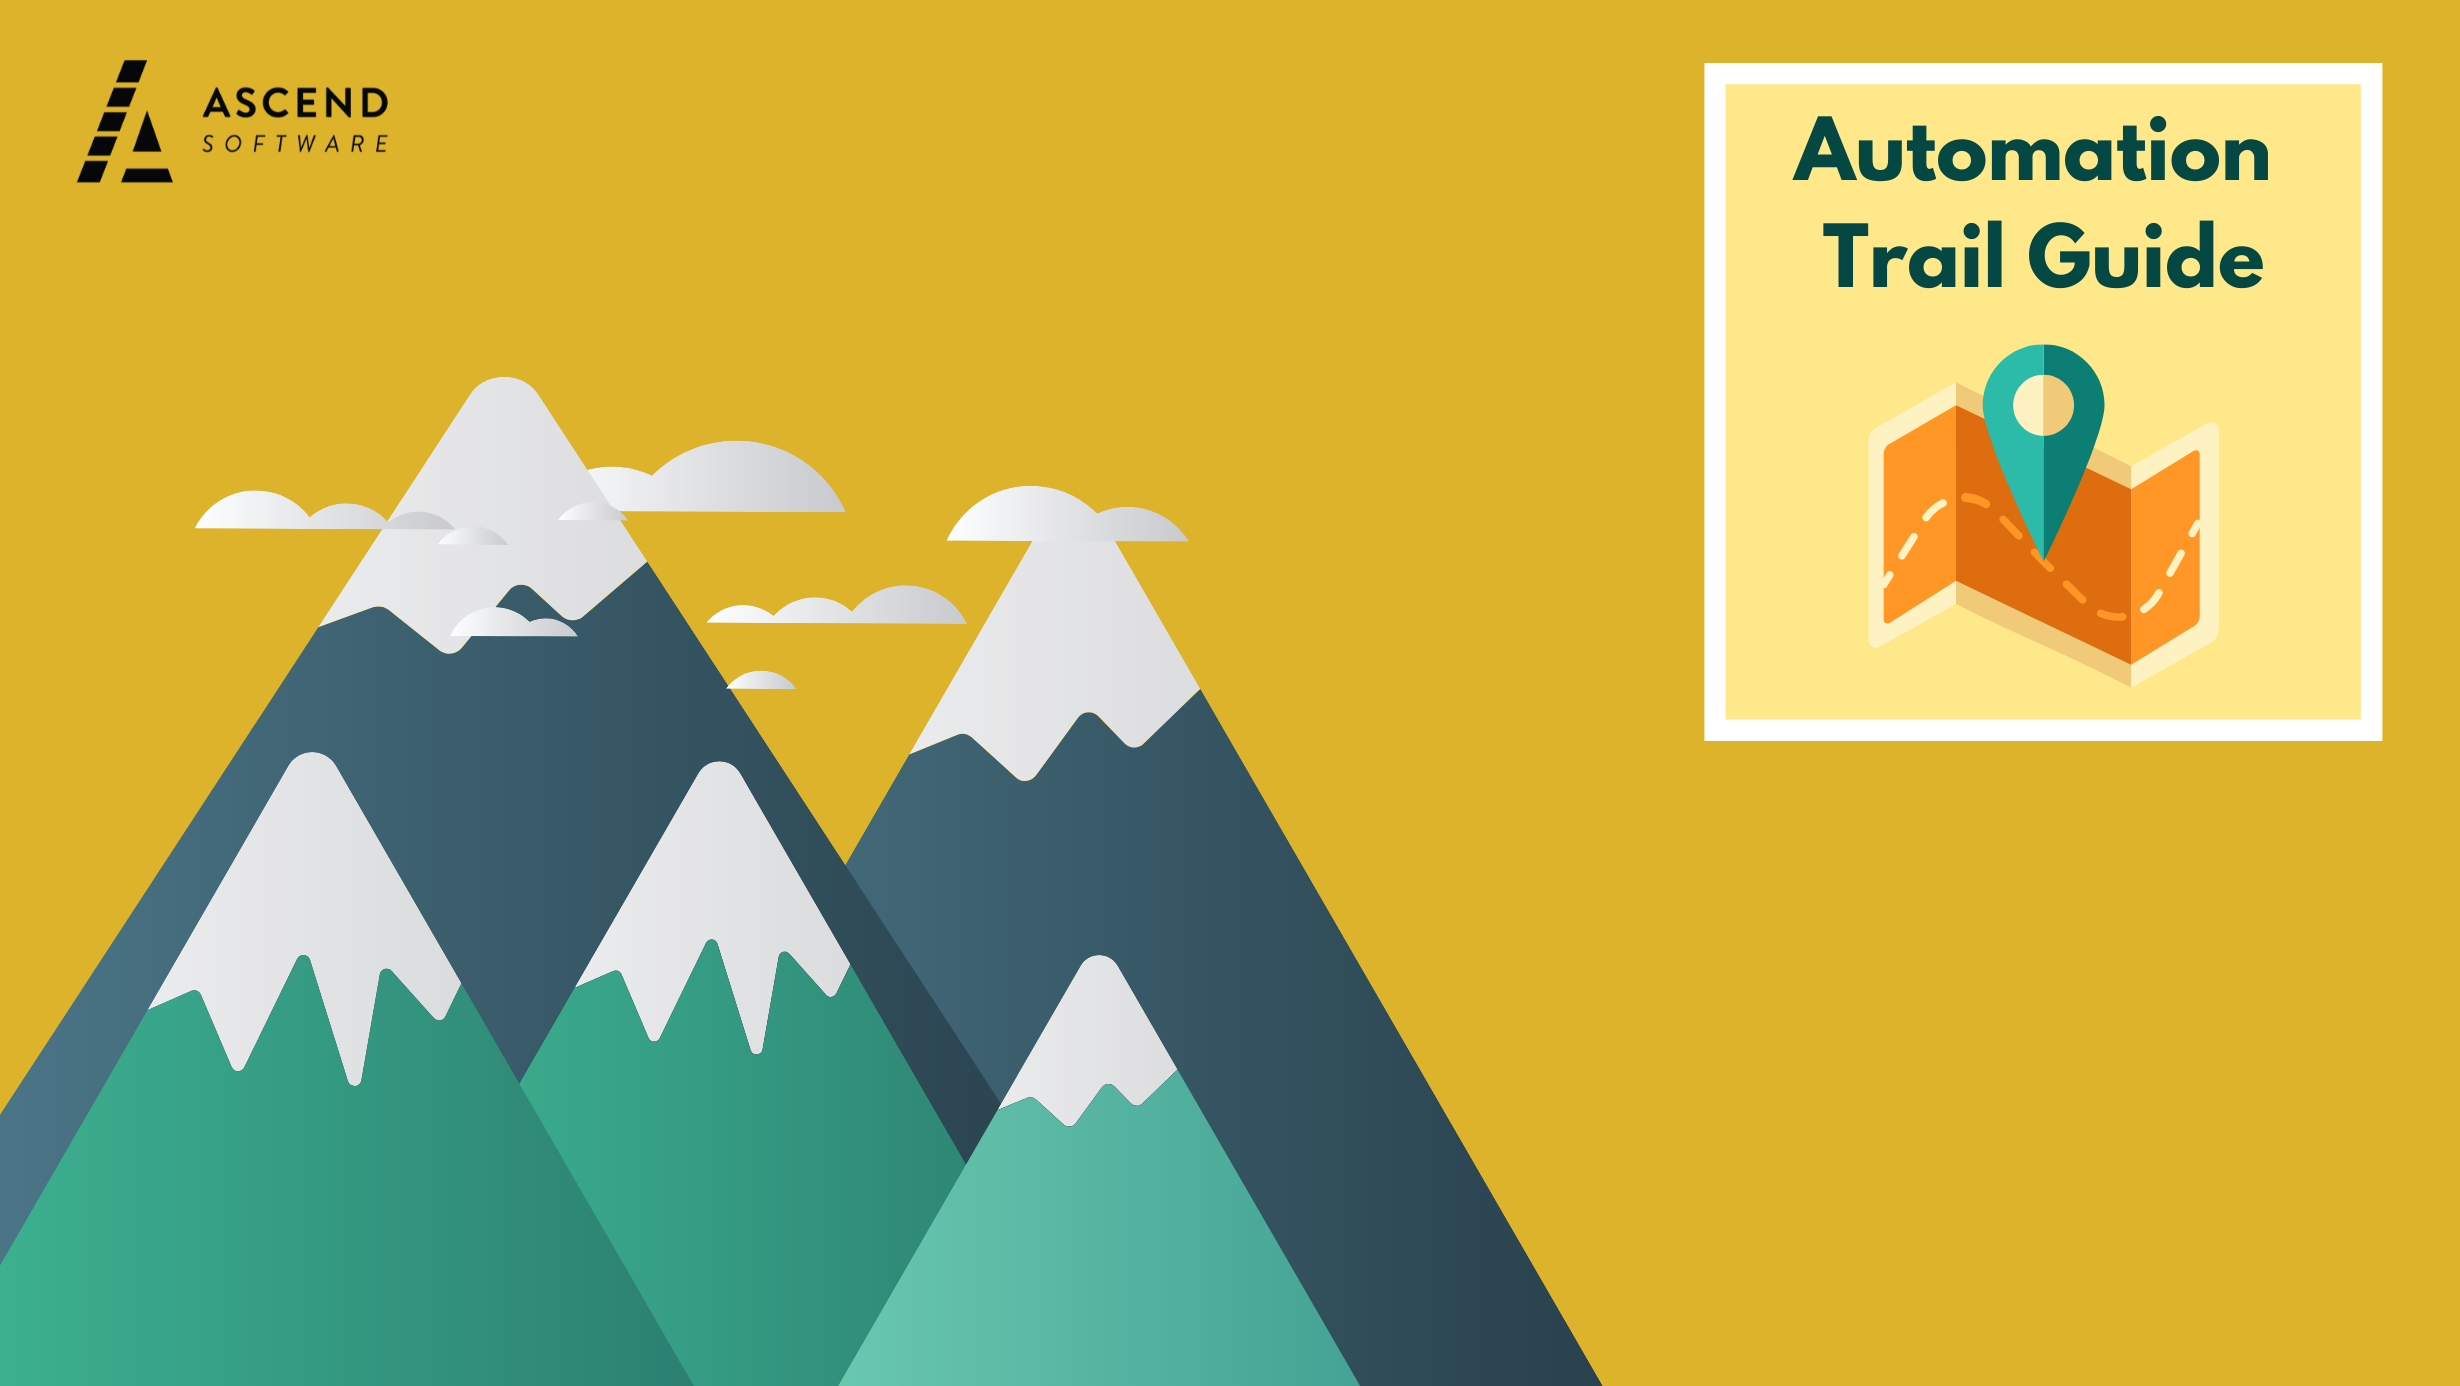 Automation Trail Guide Poster